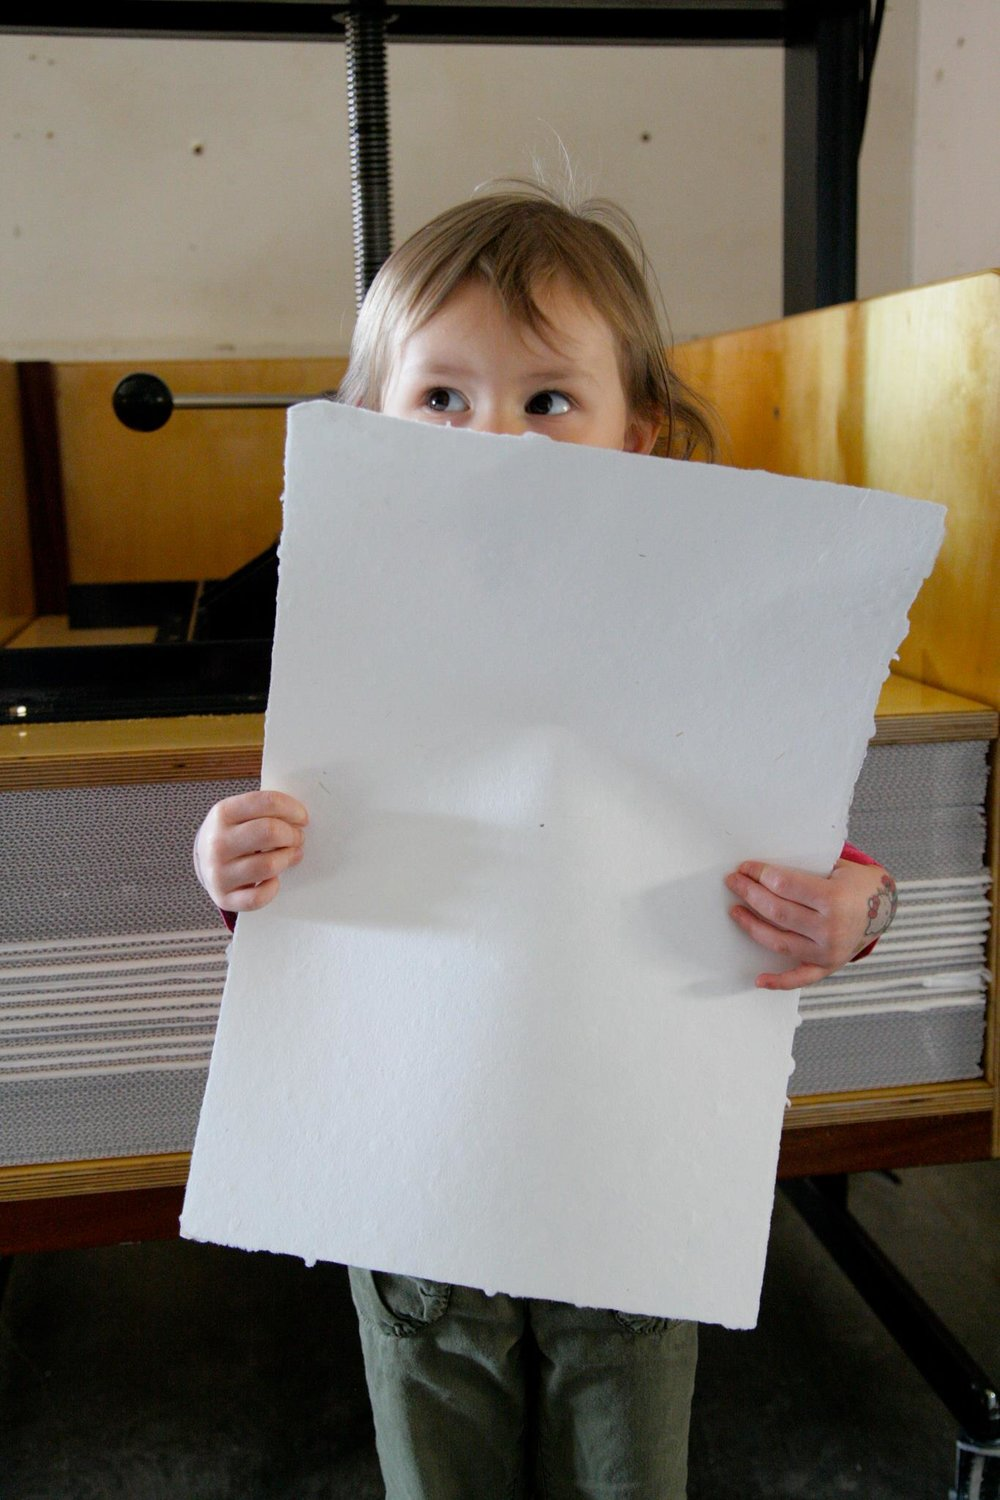 A little too short to hold such a big sheet of paper!